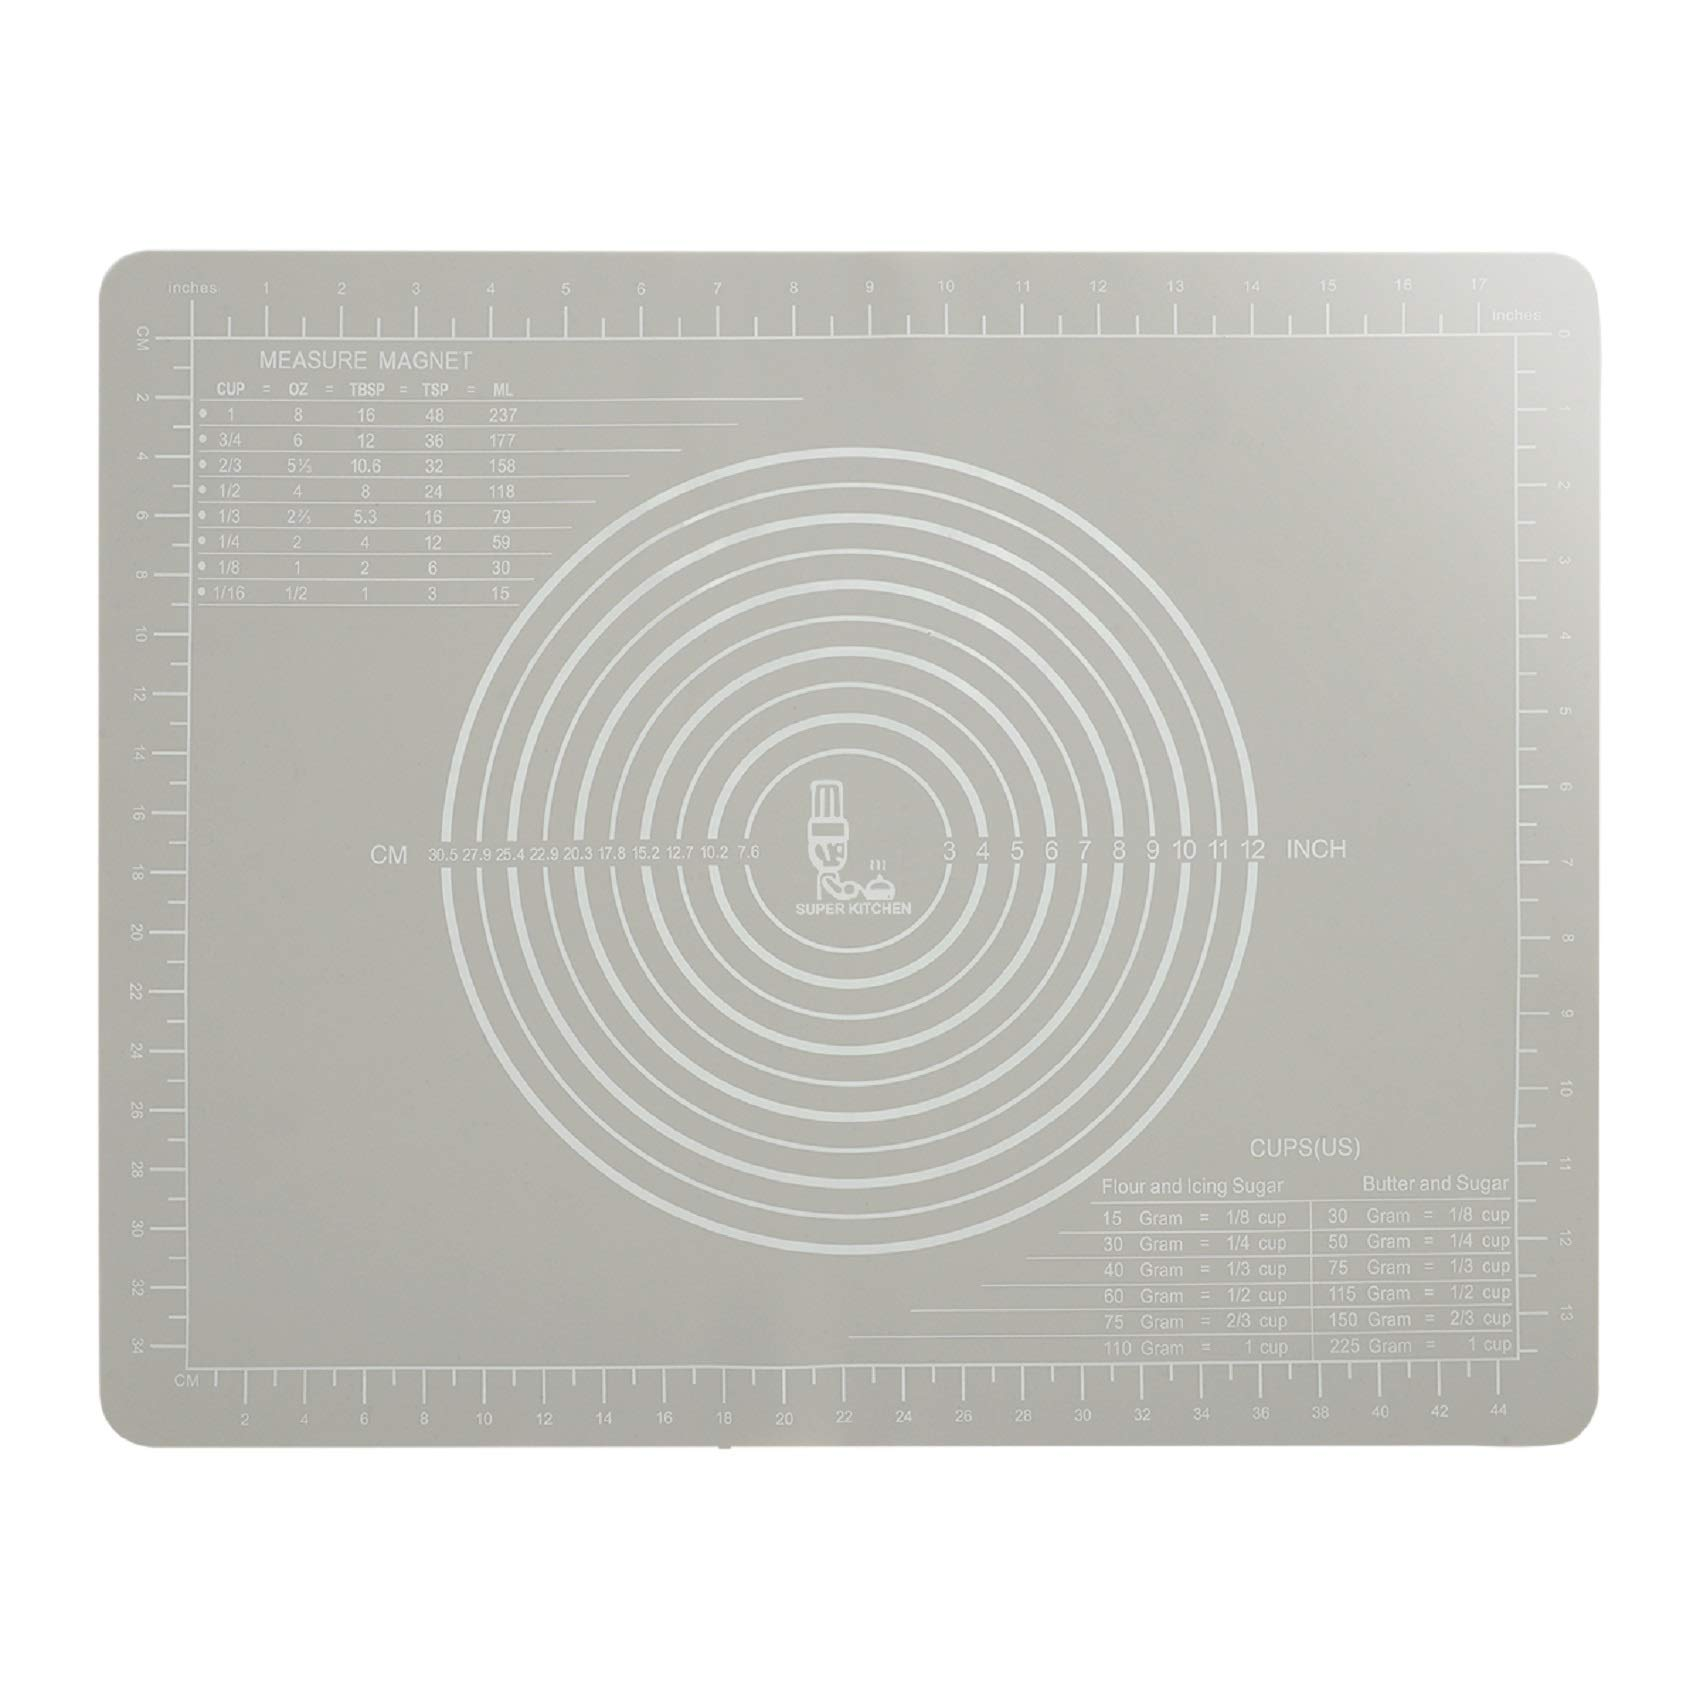 Non-Slip Silicone Pastry Mat with Measurement 50×40 cm for Silicon Baking Mats, Non-Stick Dough Rolling Kneading Mat, Table Place Mats, Fondant Icing/Bread/Pizza/Pie Mat by Super Kitchen (Grey)